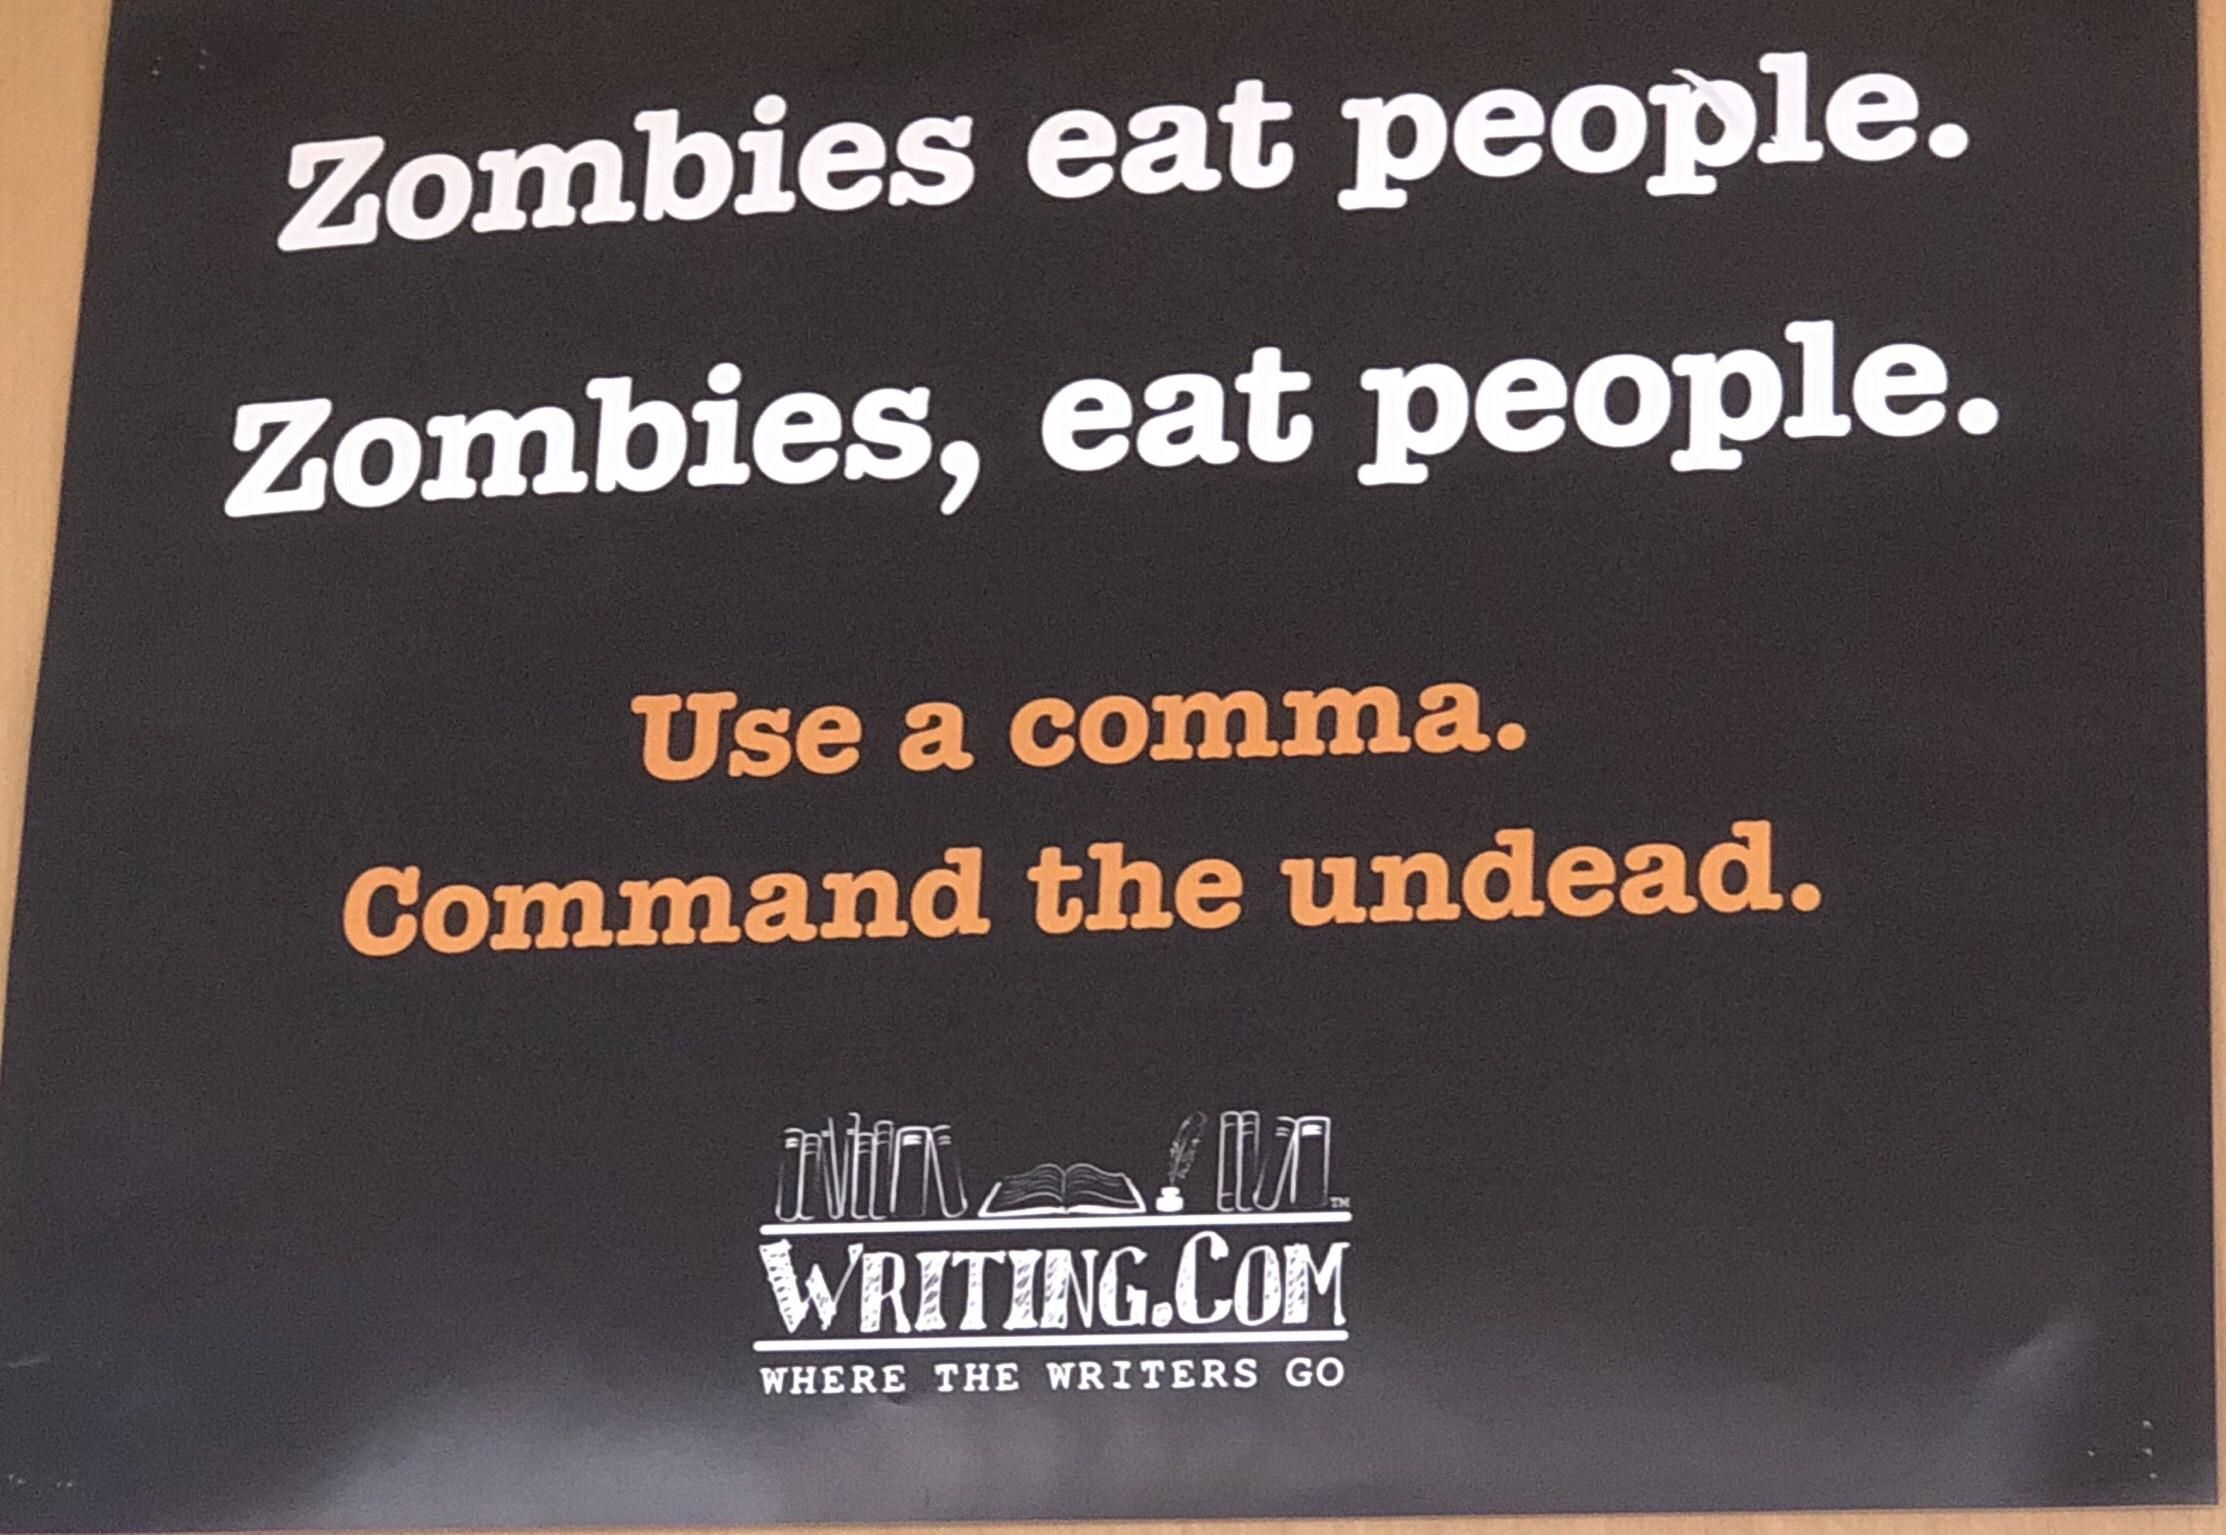 Use a comma. Command the undead.